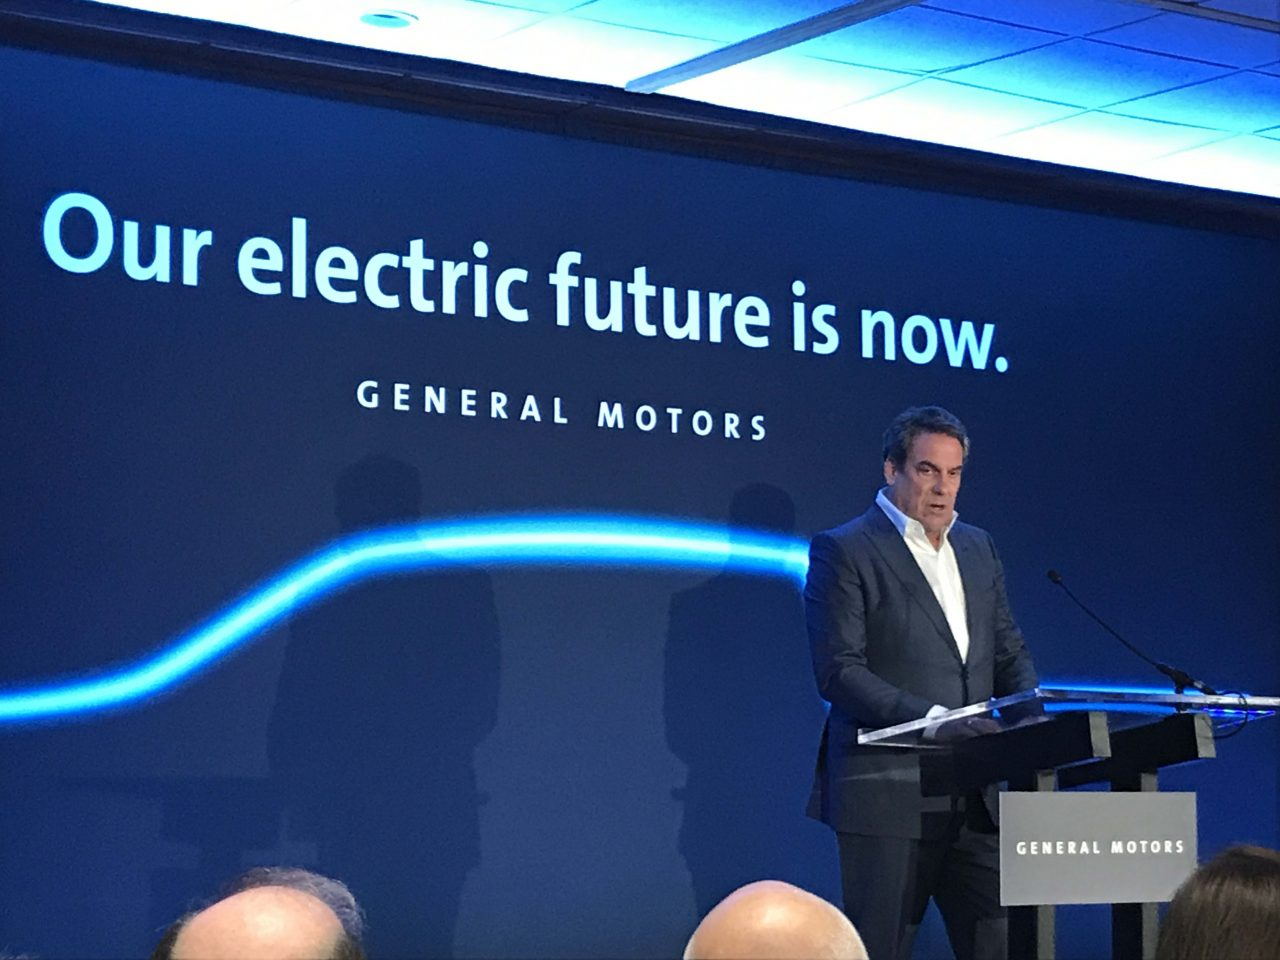 https://www.gmi-co.com/wp-content/uploads/2020/11/under-pressure-from-wall-street-general-motors-has-no-interest-in-spinning-off-ev-business-1280x960.jpg